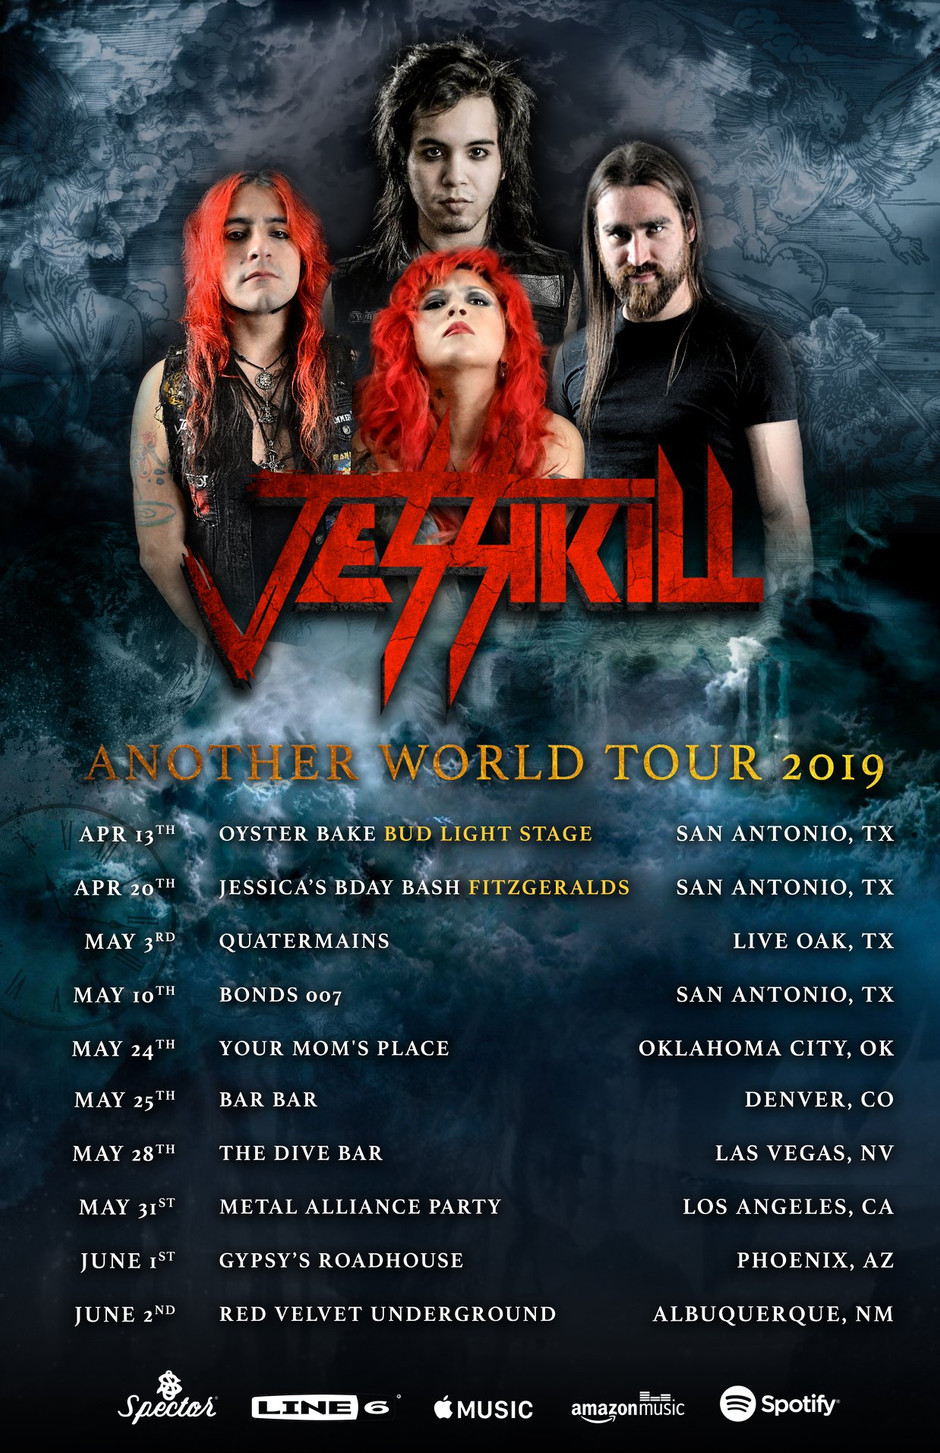 May 10 Jessikill Tour Kickoff at Bonds 007 | 2019 Another World Tour